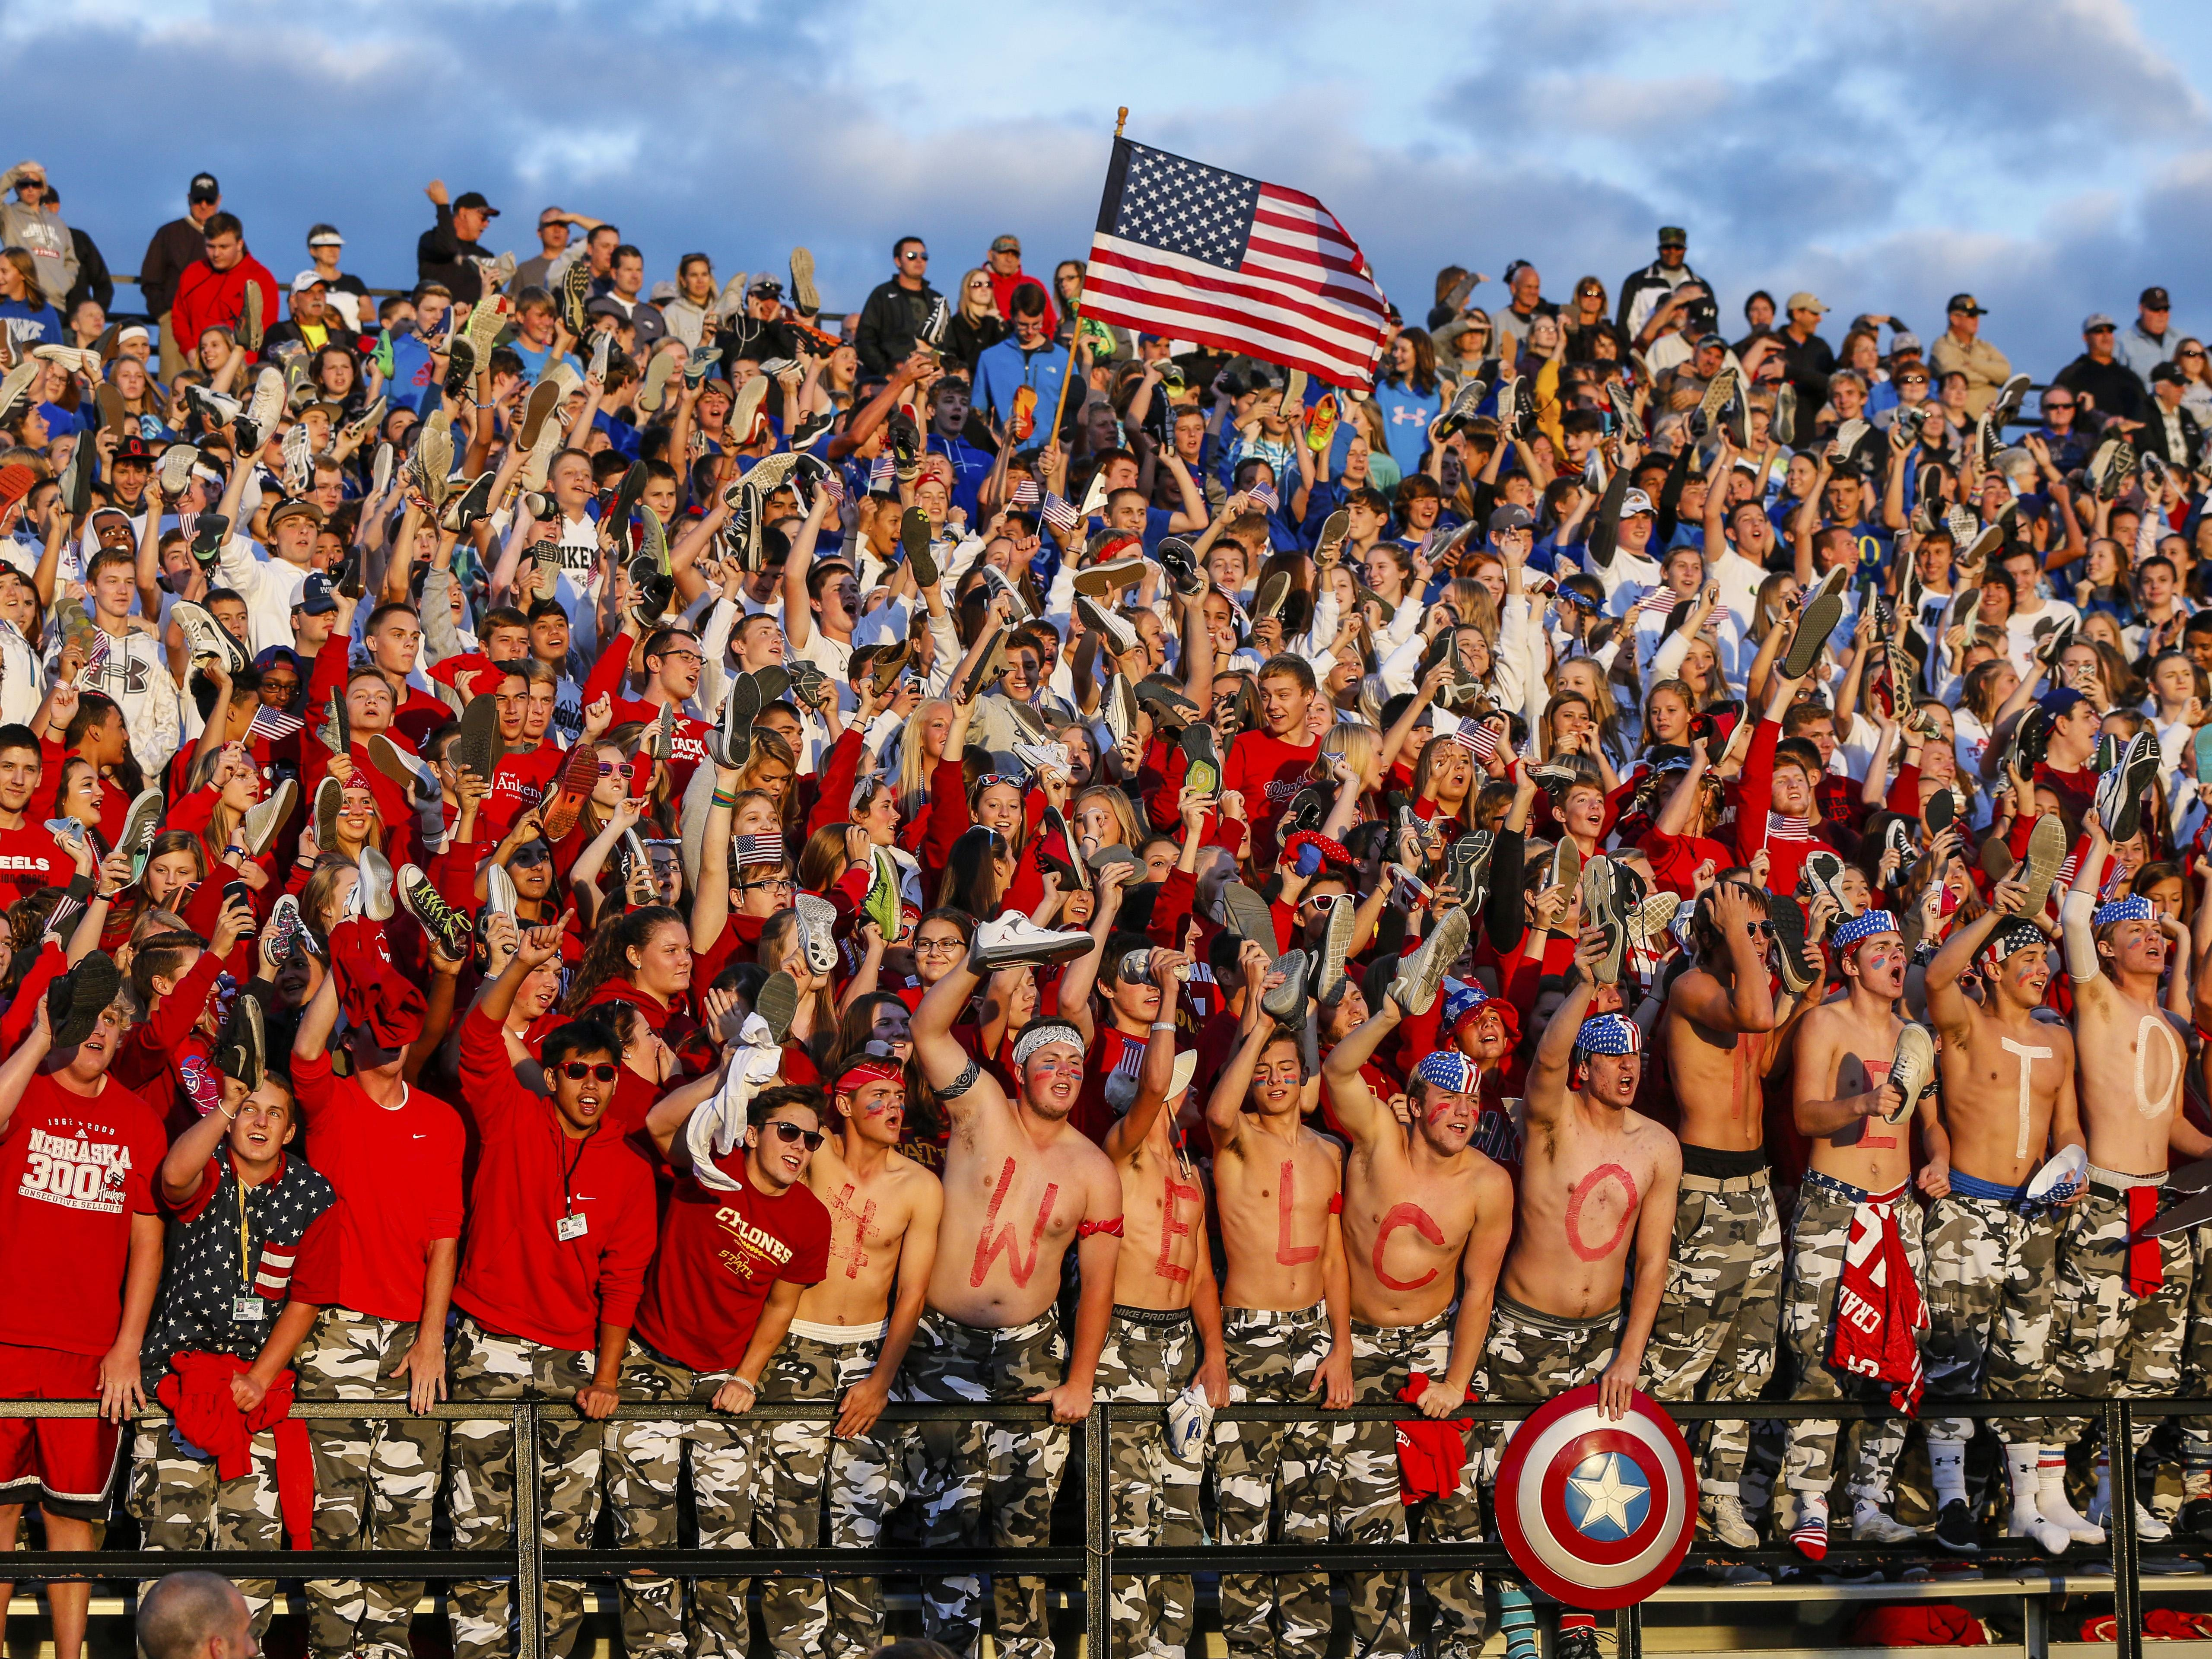 Students cheer Friday during the annual crosstown rivalry game between Ankeny and Ankeny Centennial. Ankeny earned its first win in the three-year series with a 24-16 triumph.